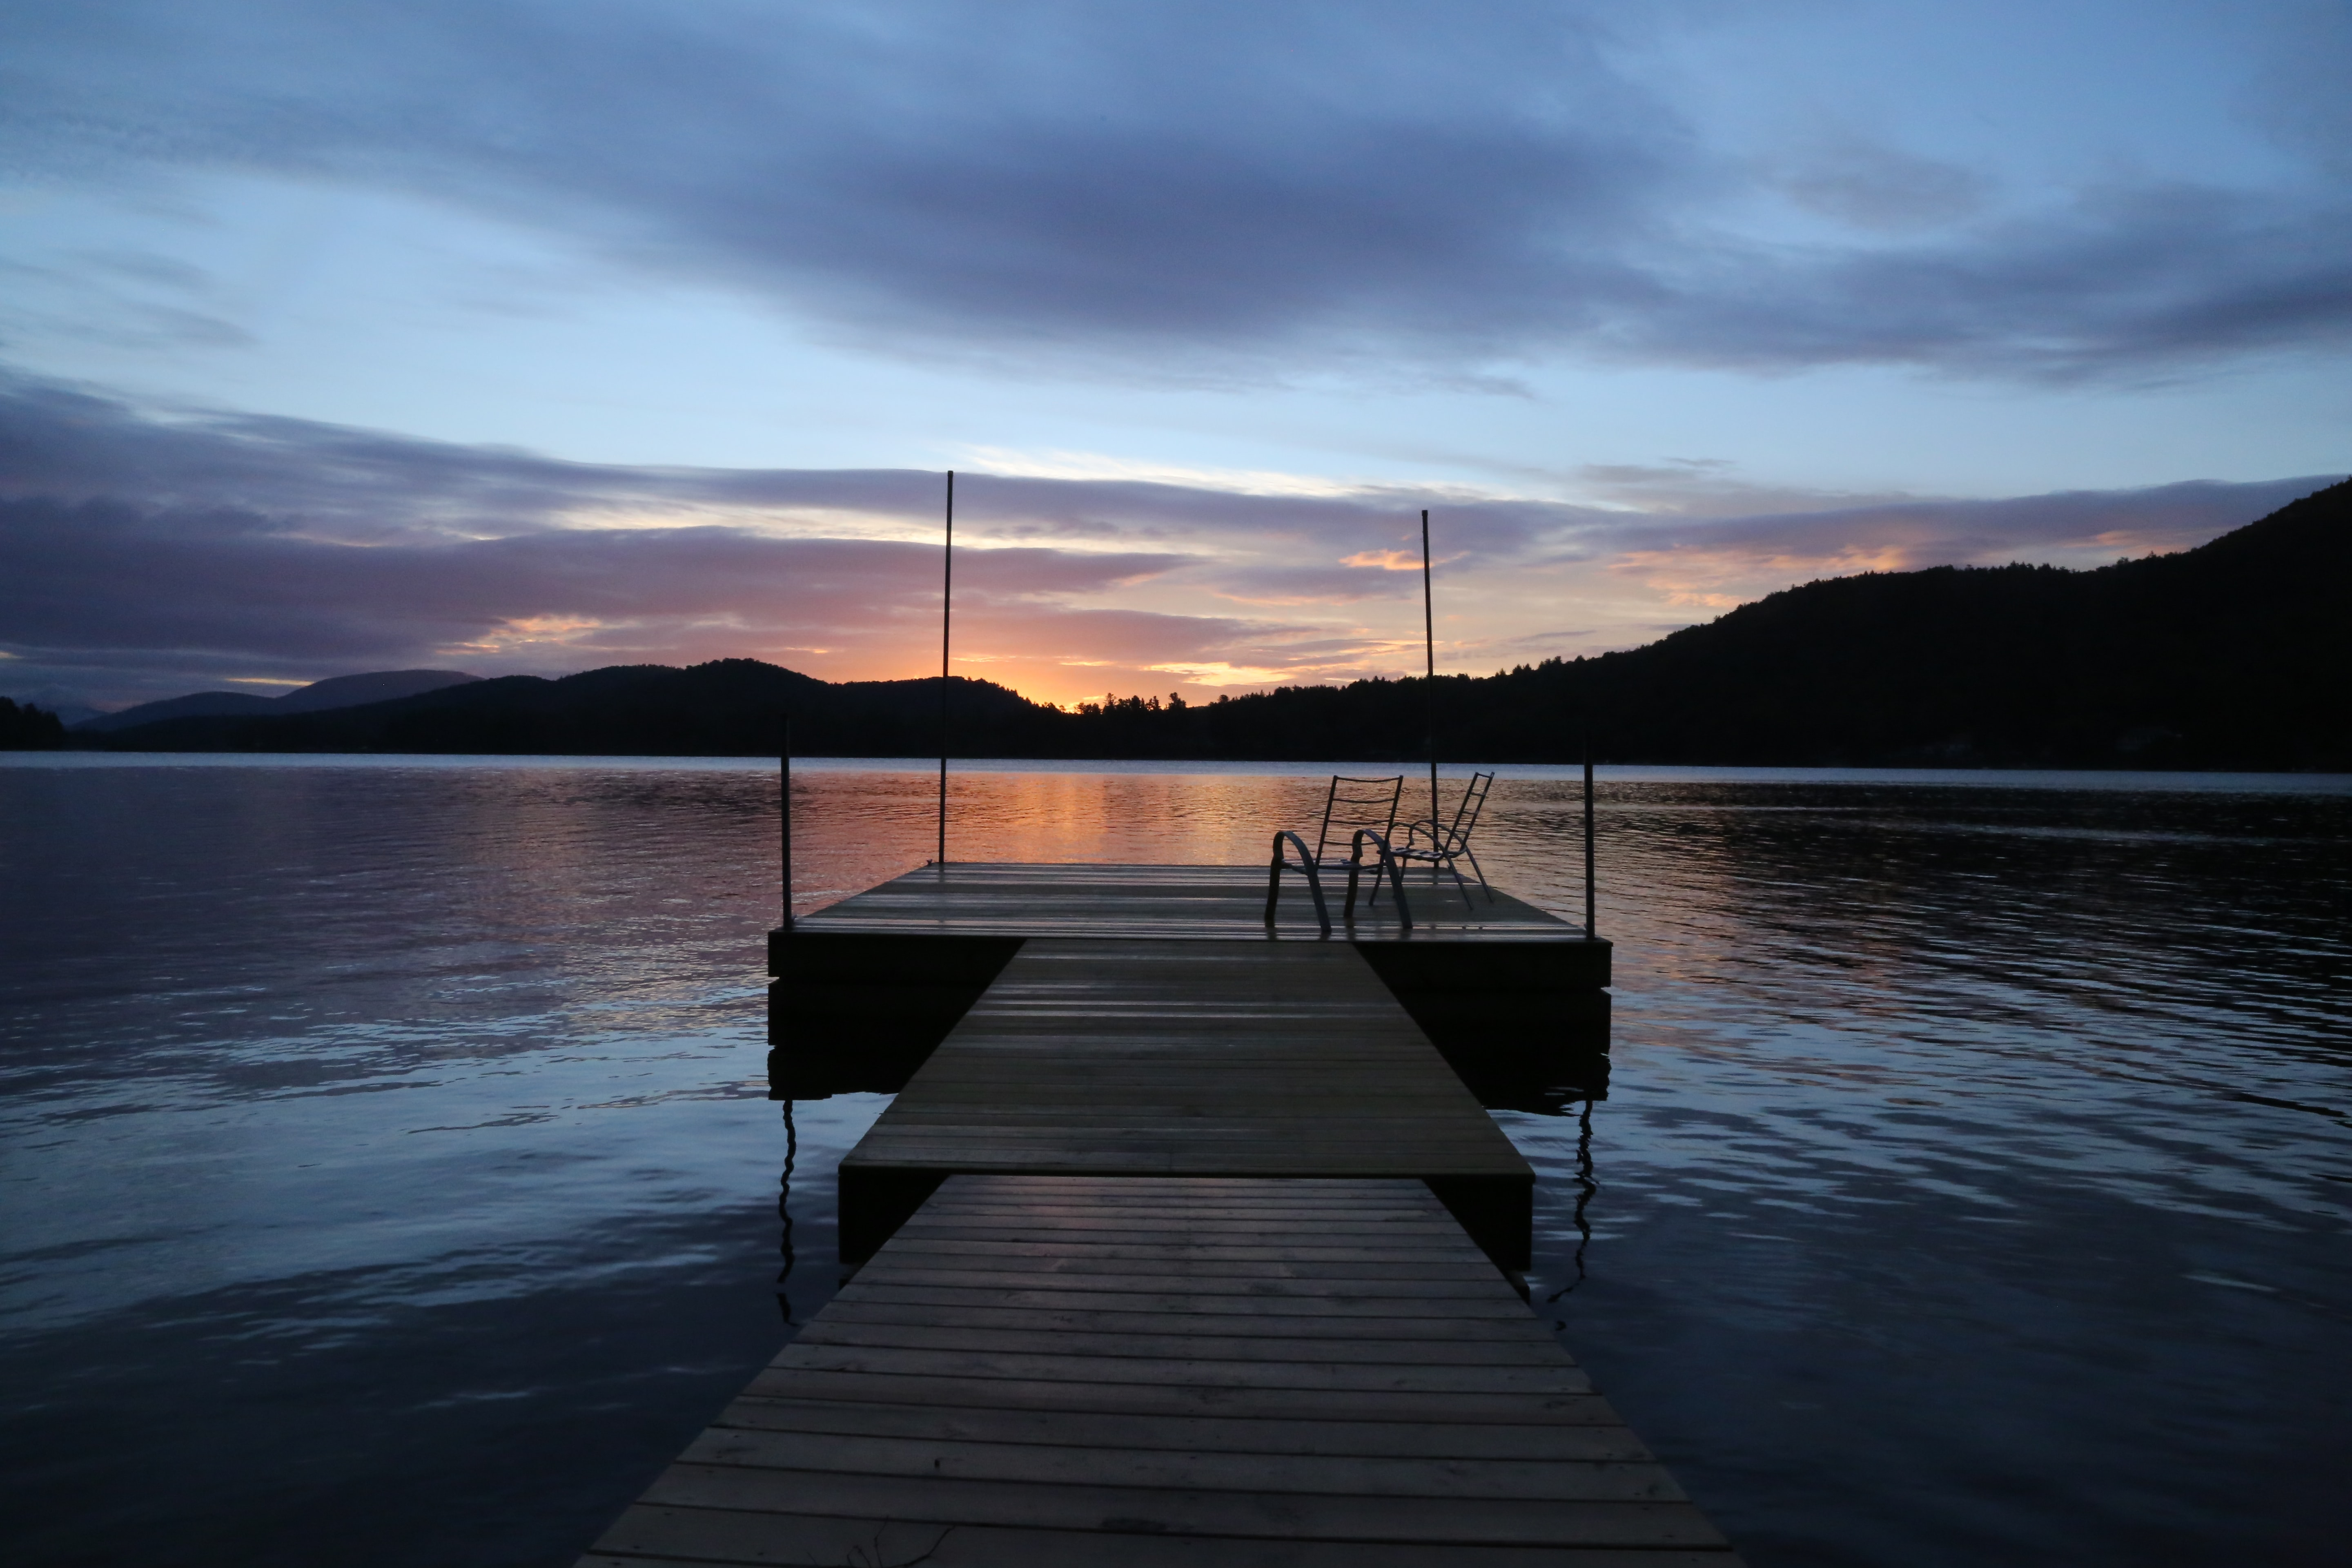 Looking out towards the end of a dock over a lake at sunset